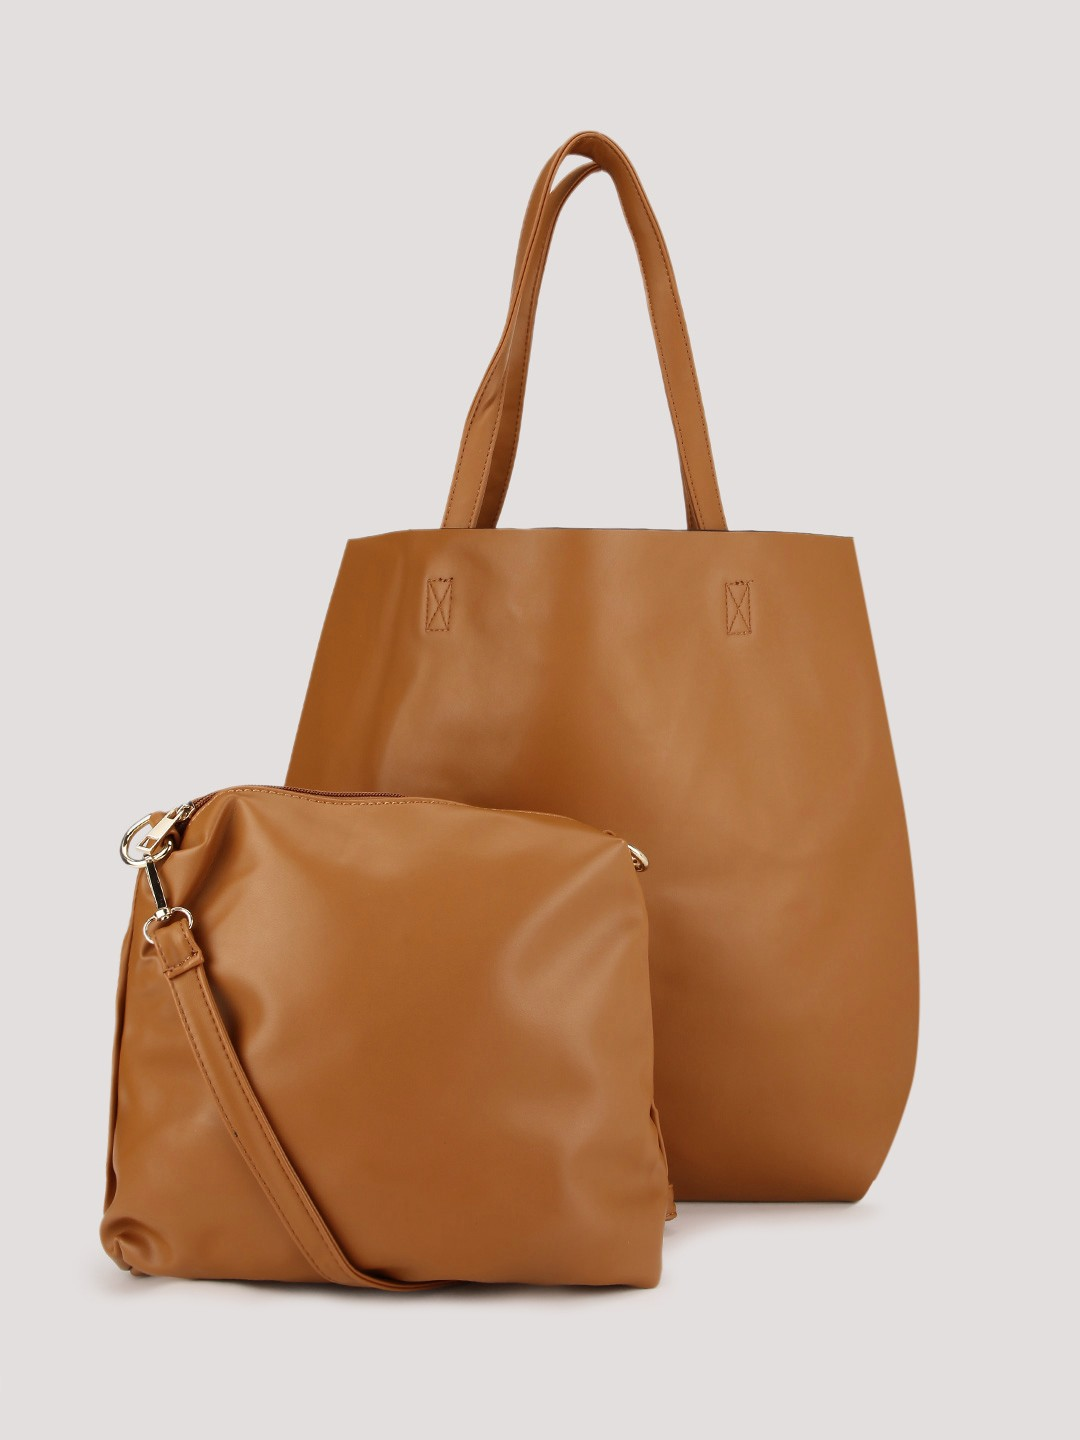 Bag online shopping in india